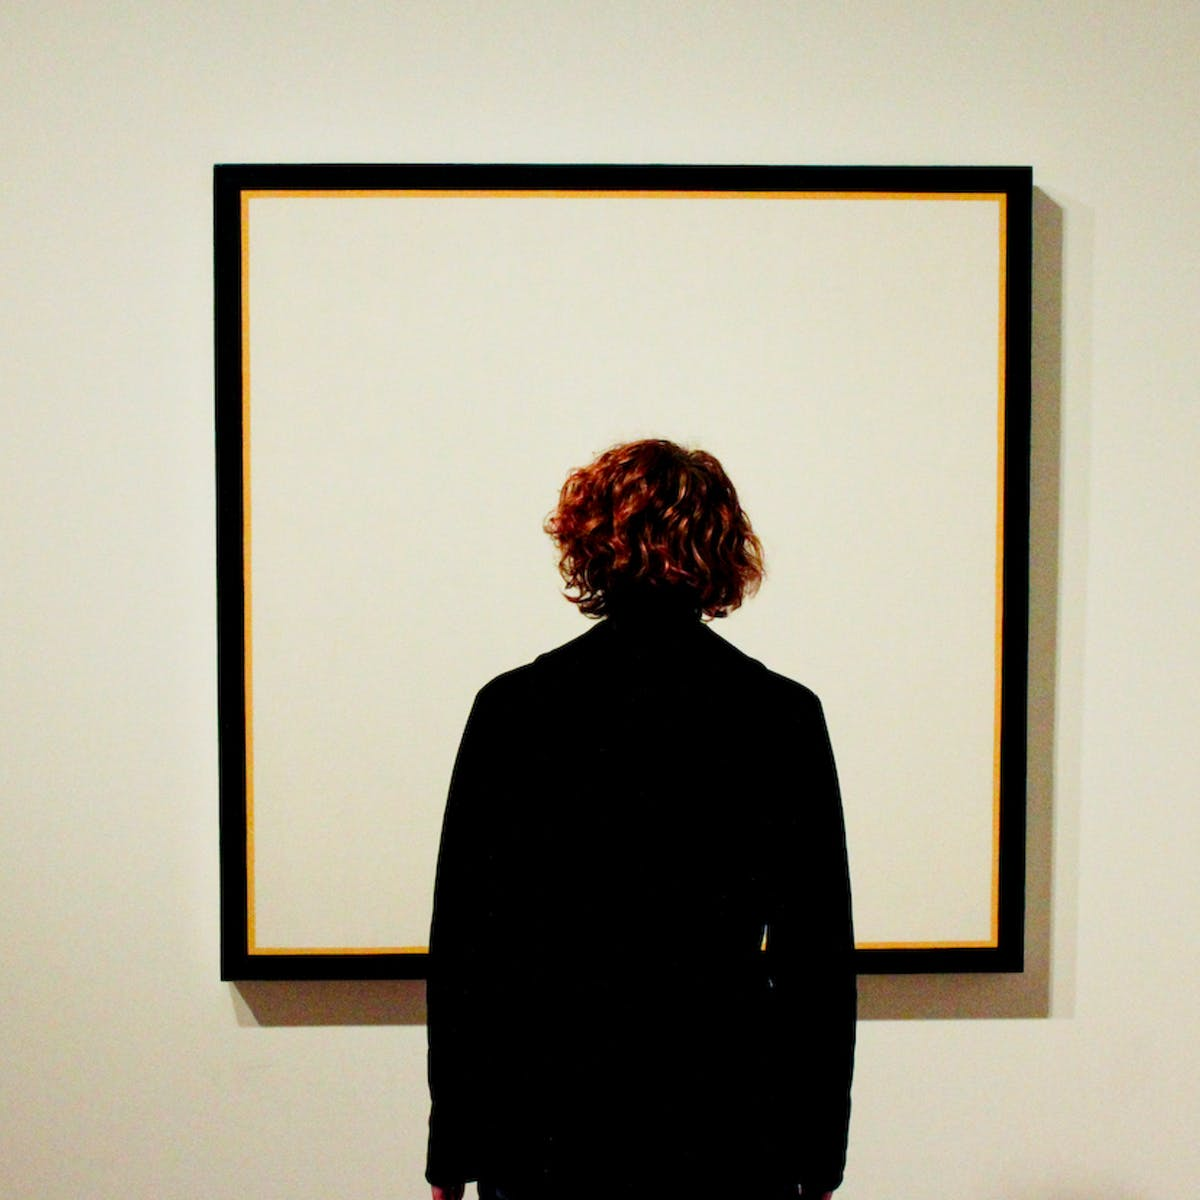 Fogies, insiders and press release summarisers: art criticism in ...